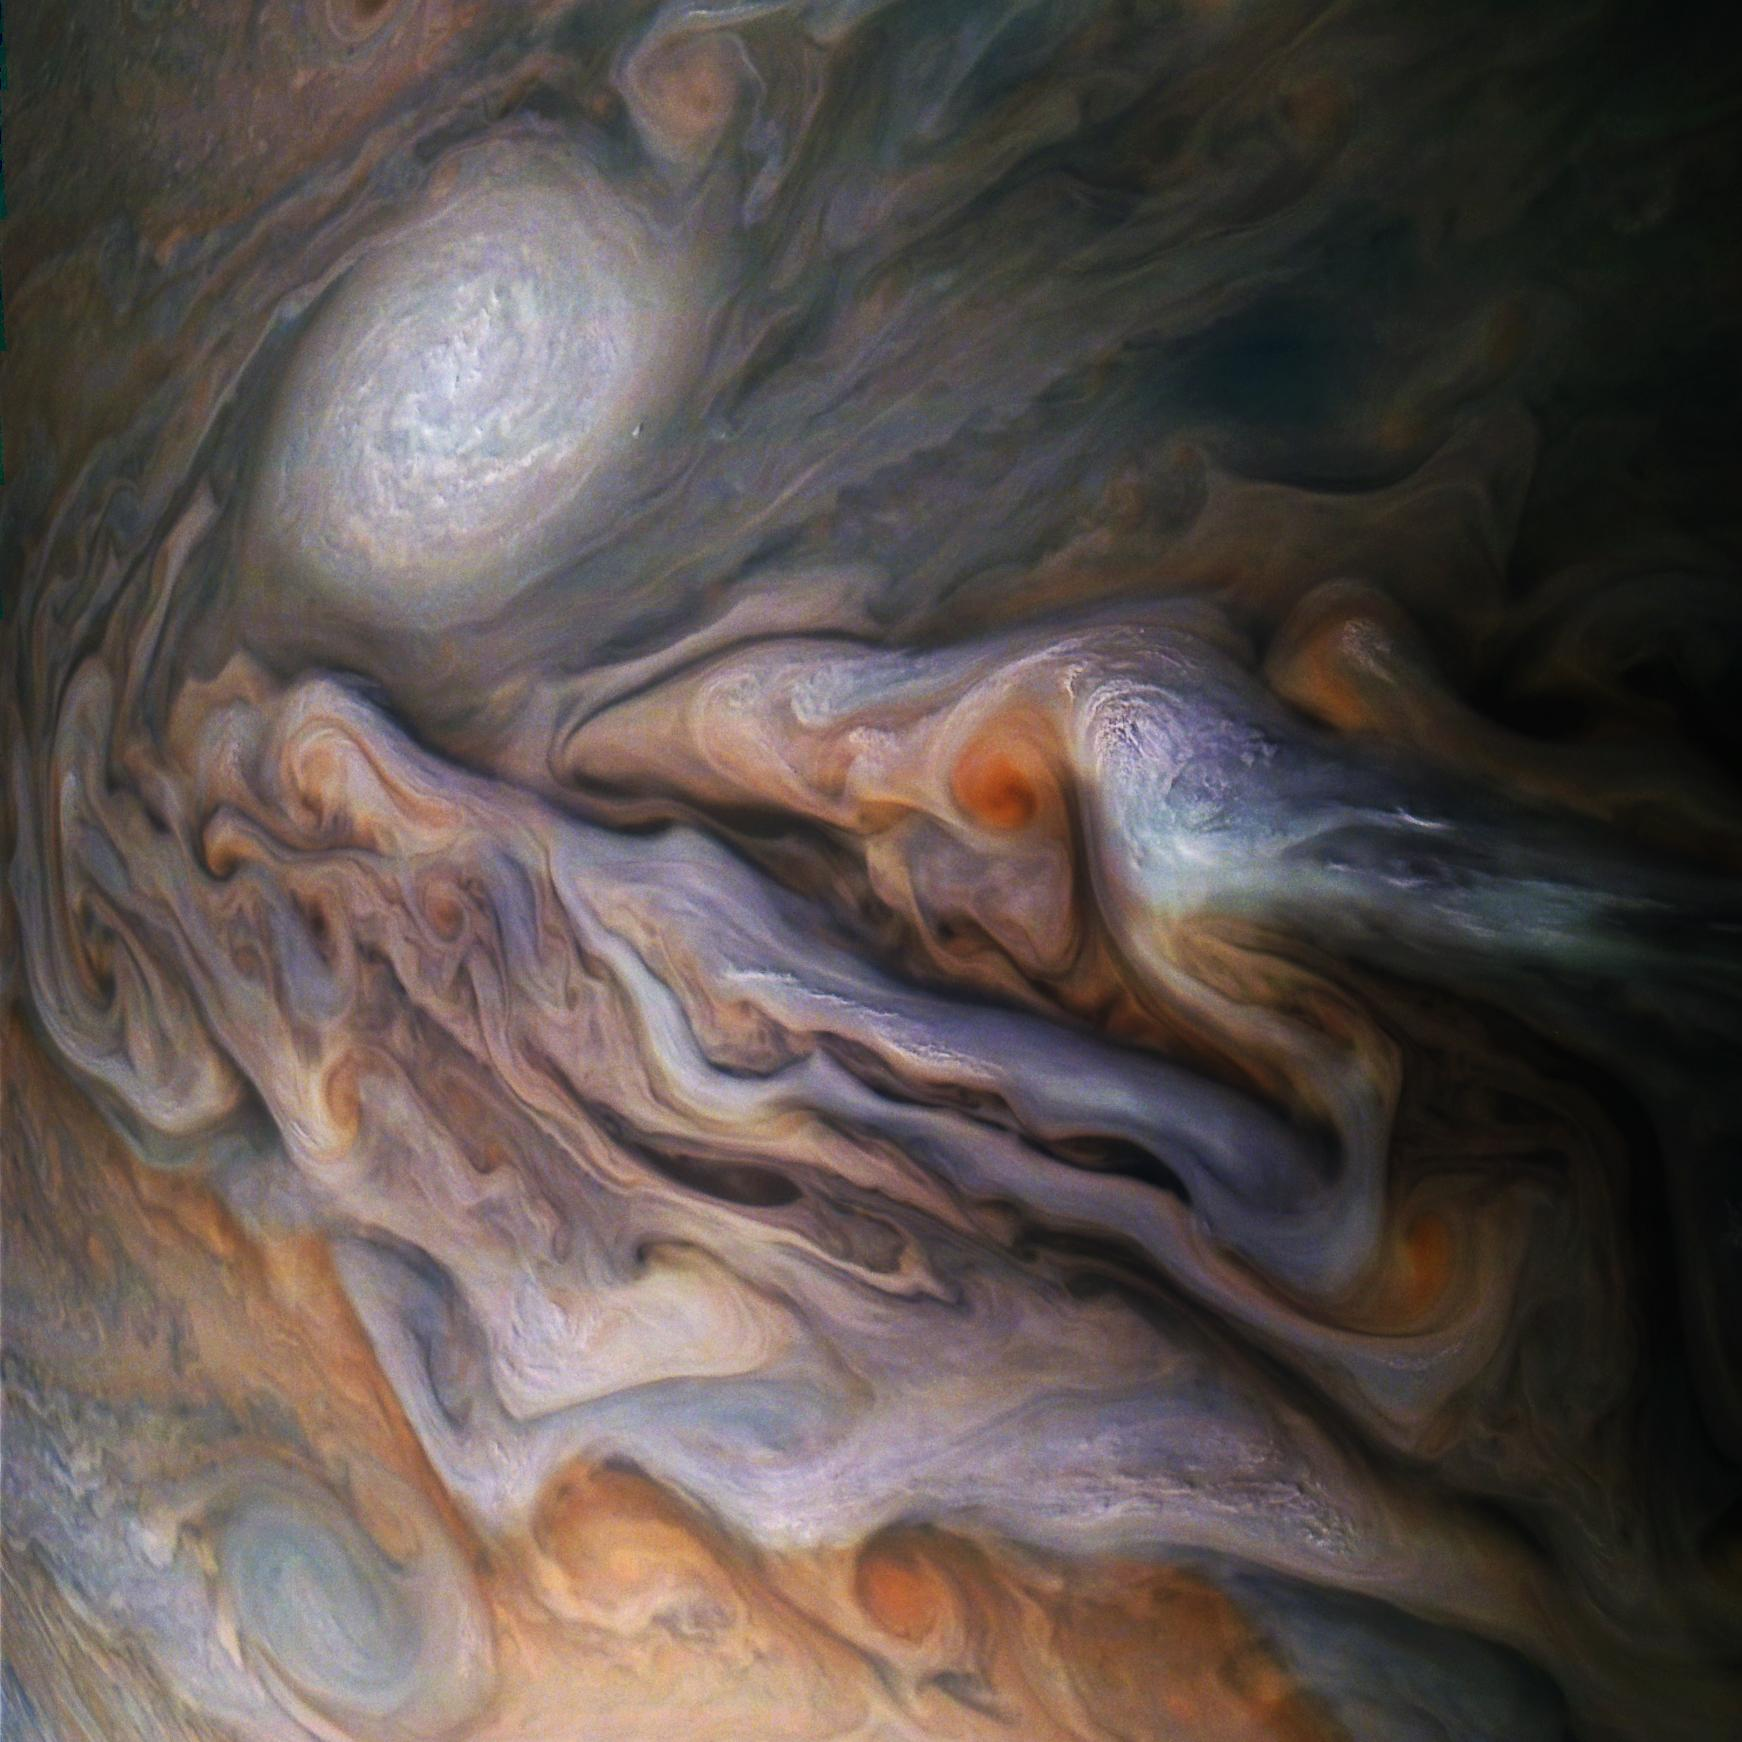 A multitude of magnificent, swirling clouds in Jupiters dynamic North North Temperate Belt is captured in this image from NASAs Juno spacecraft.